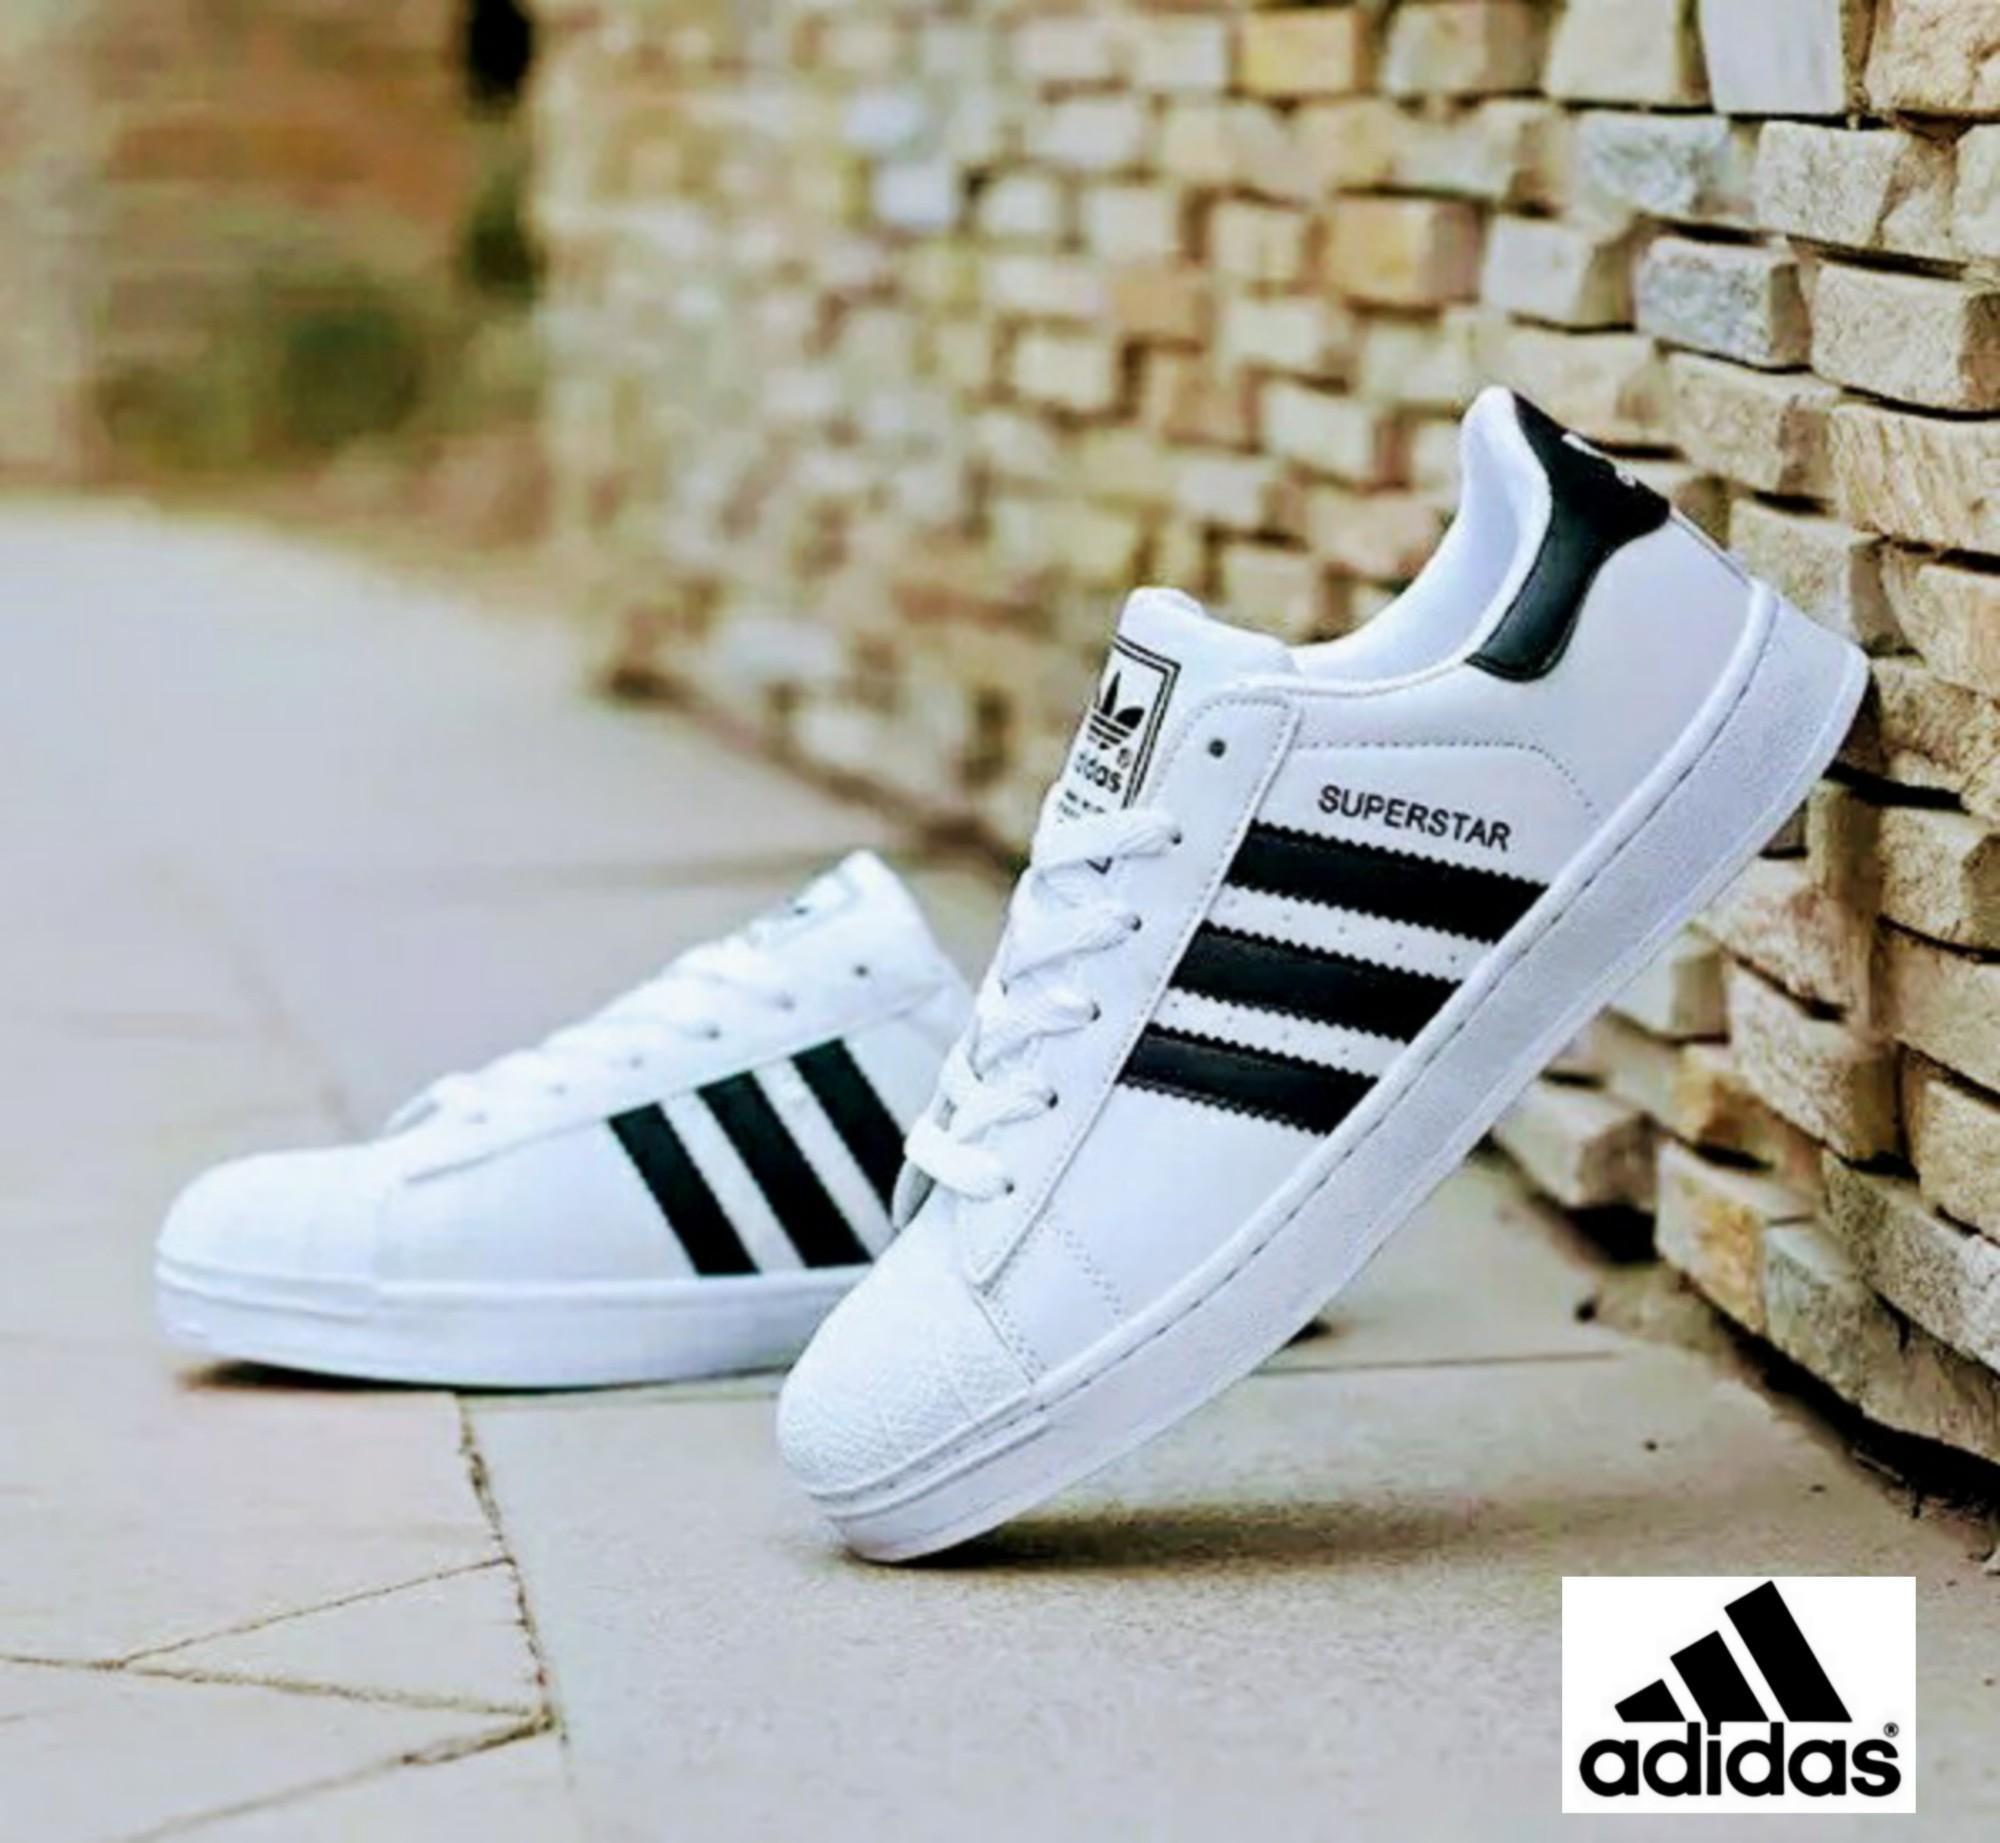 adidas superstar shoes price in bd